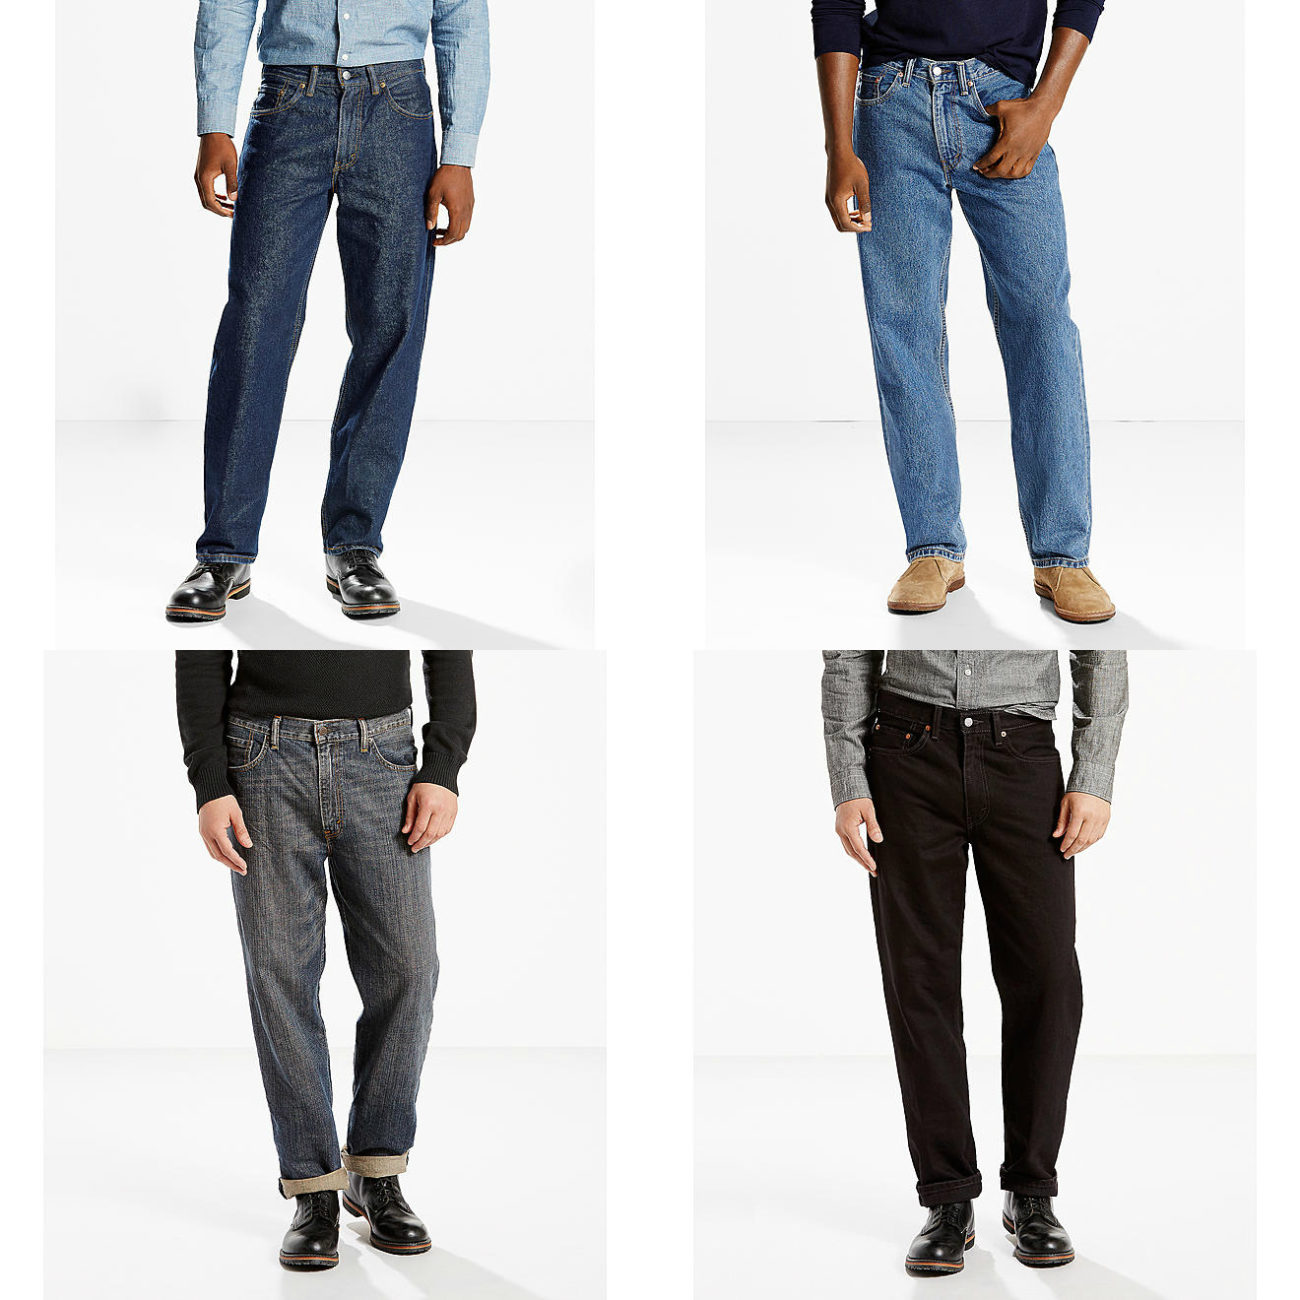 Sears – Levi's Men's Big & Tall 550™ Relaxed Fit Jeans Only $39.99 Through 09/04/17  (Reg $69.50) + Free Store Pickup